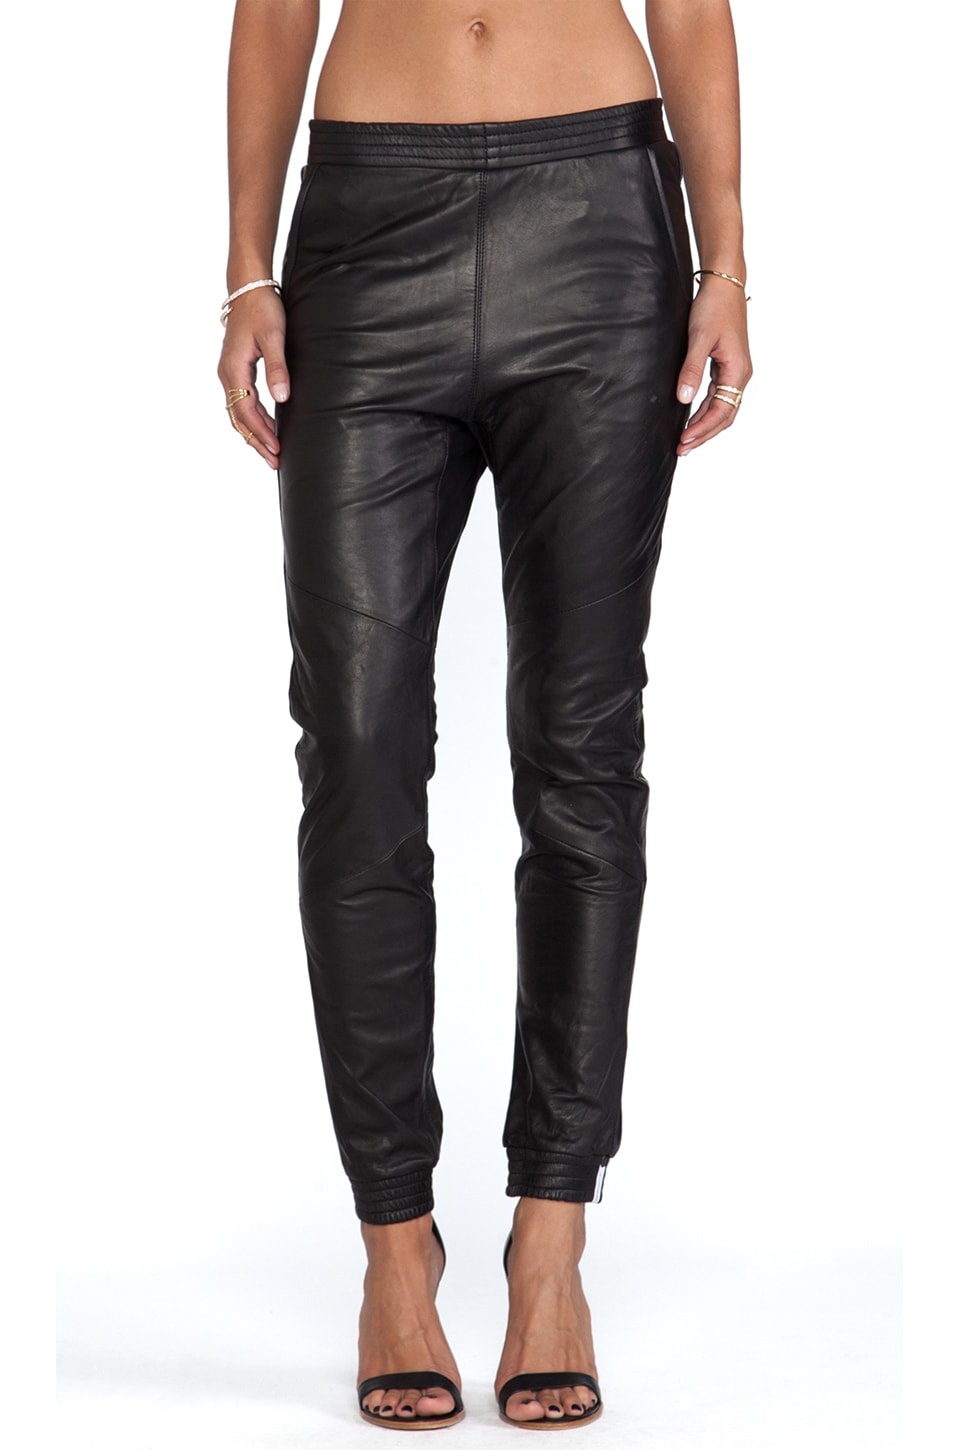 One Teaspoon Leather trackies in Black